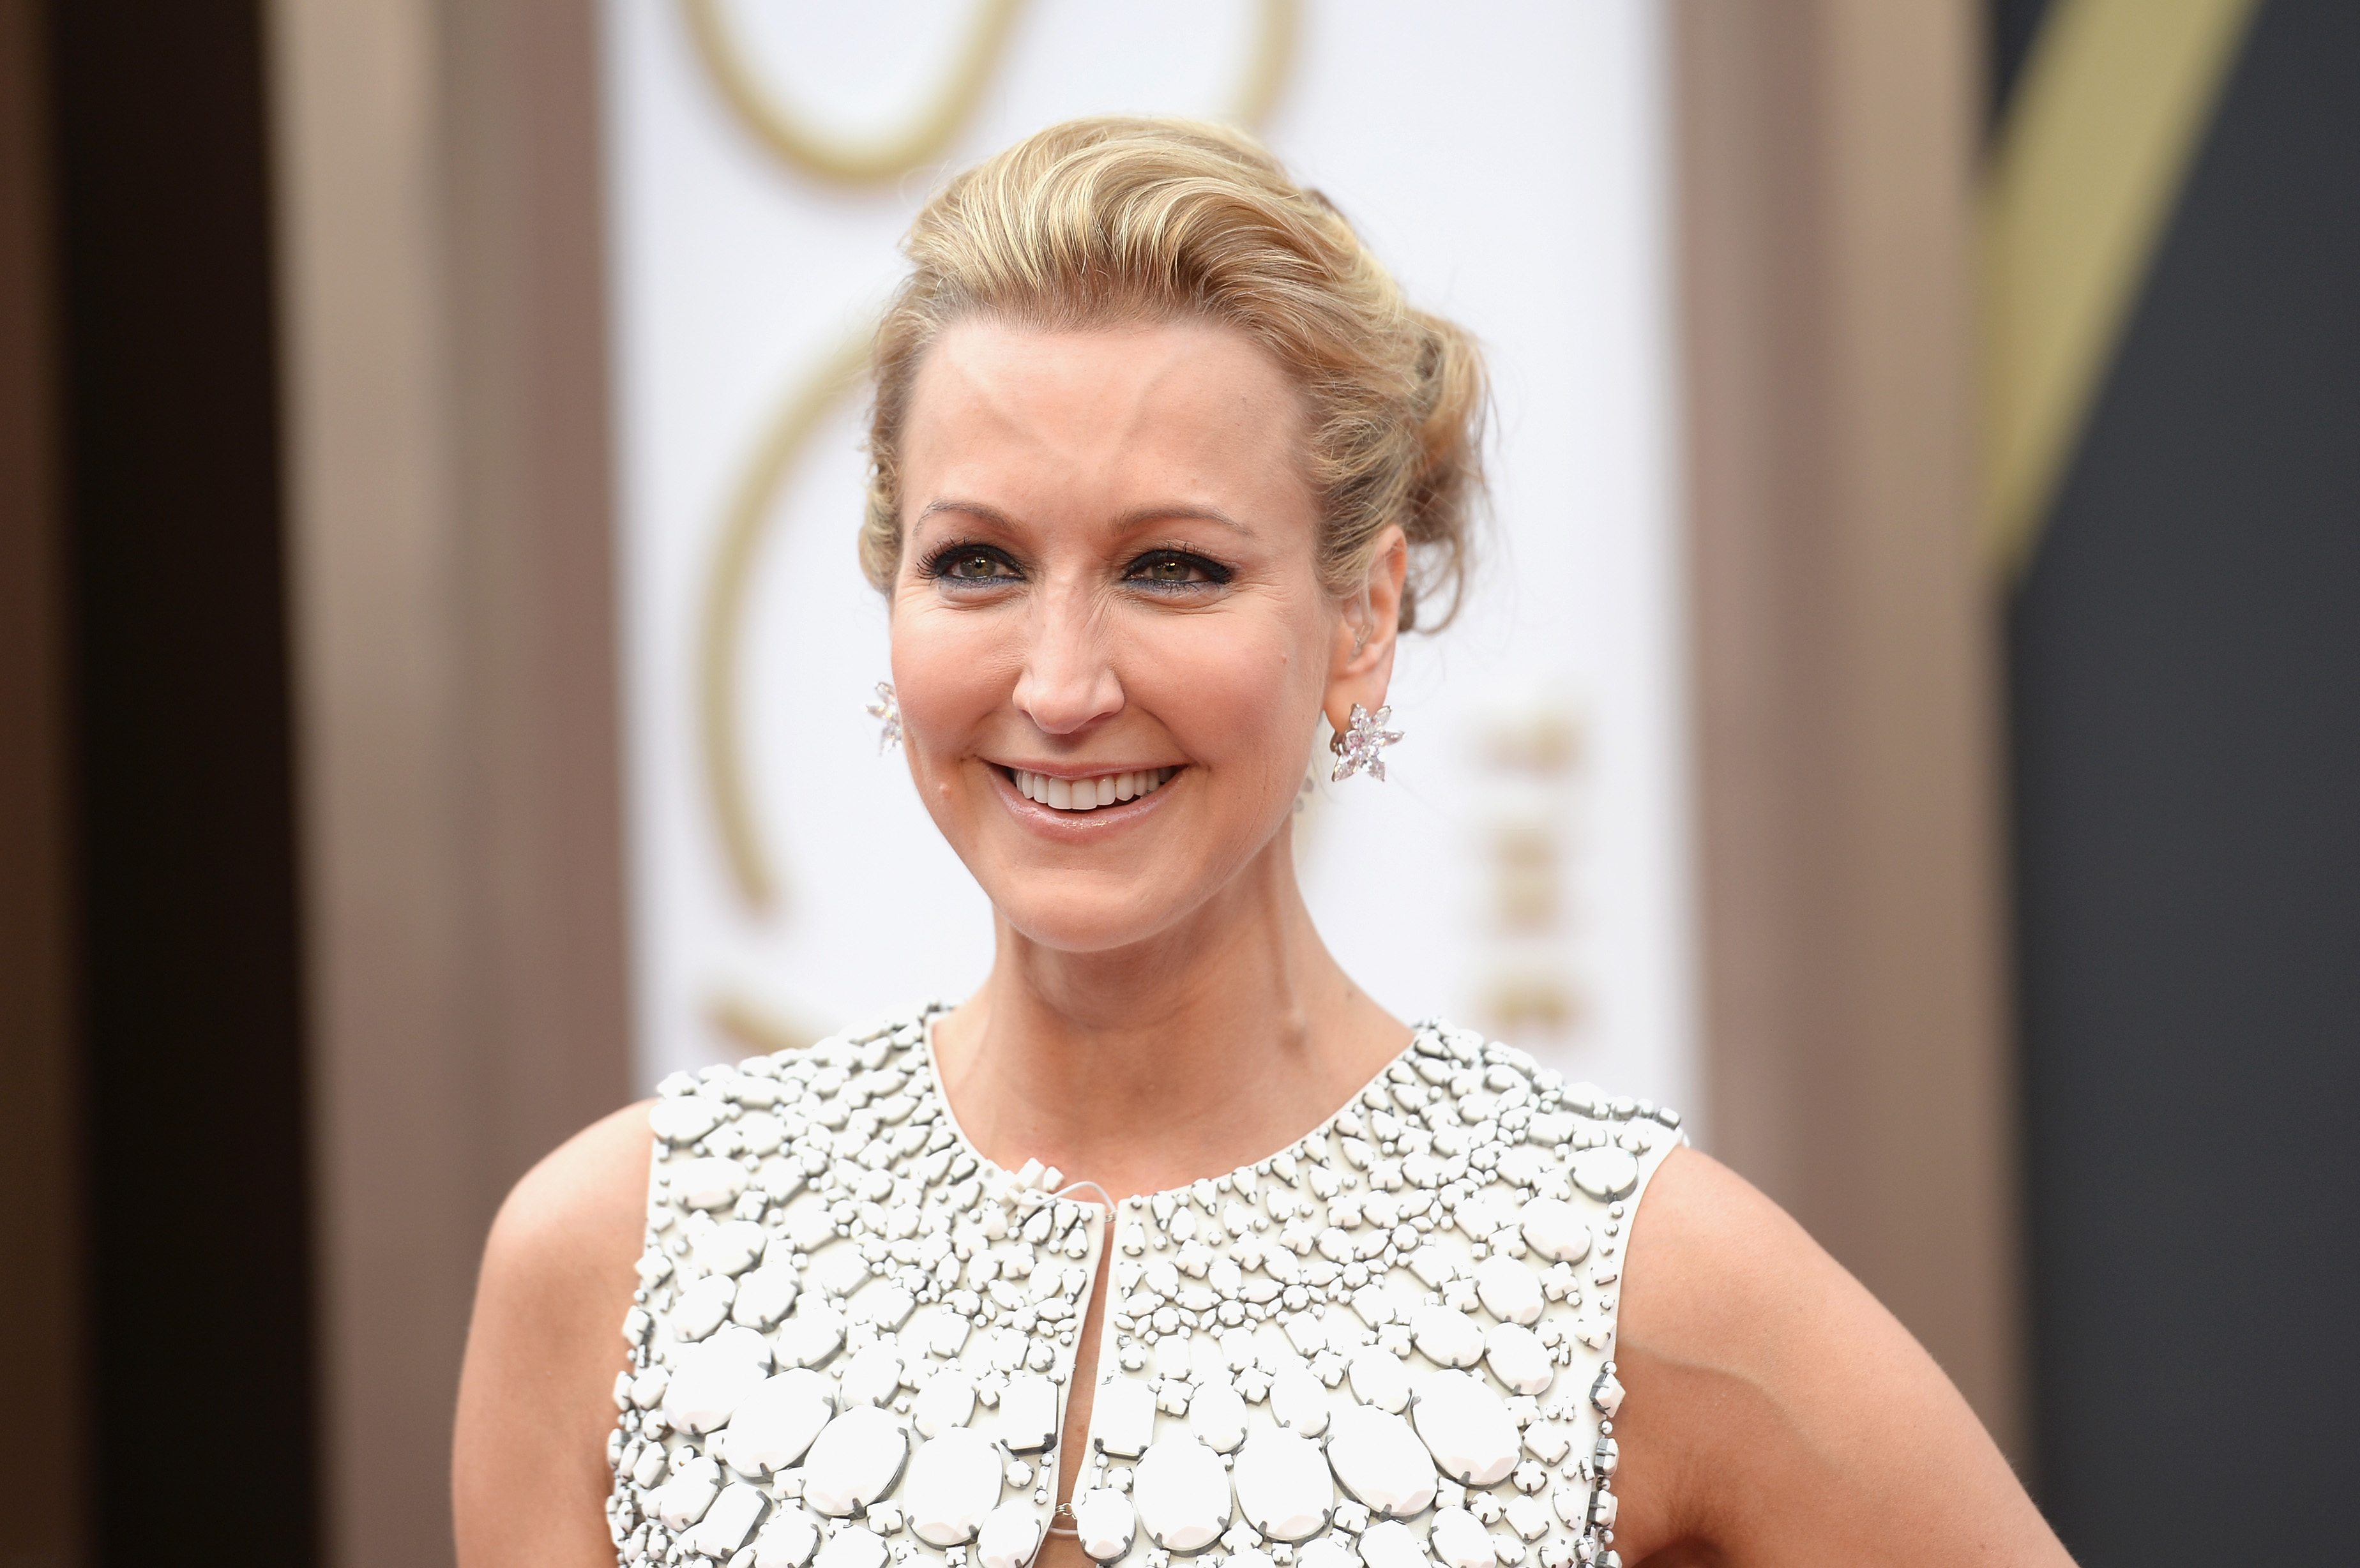 TV Personality Lara Spencer attends the 2014 Oscars.